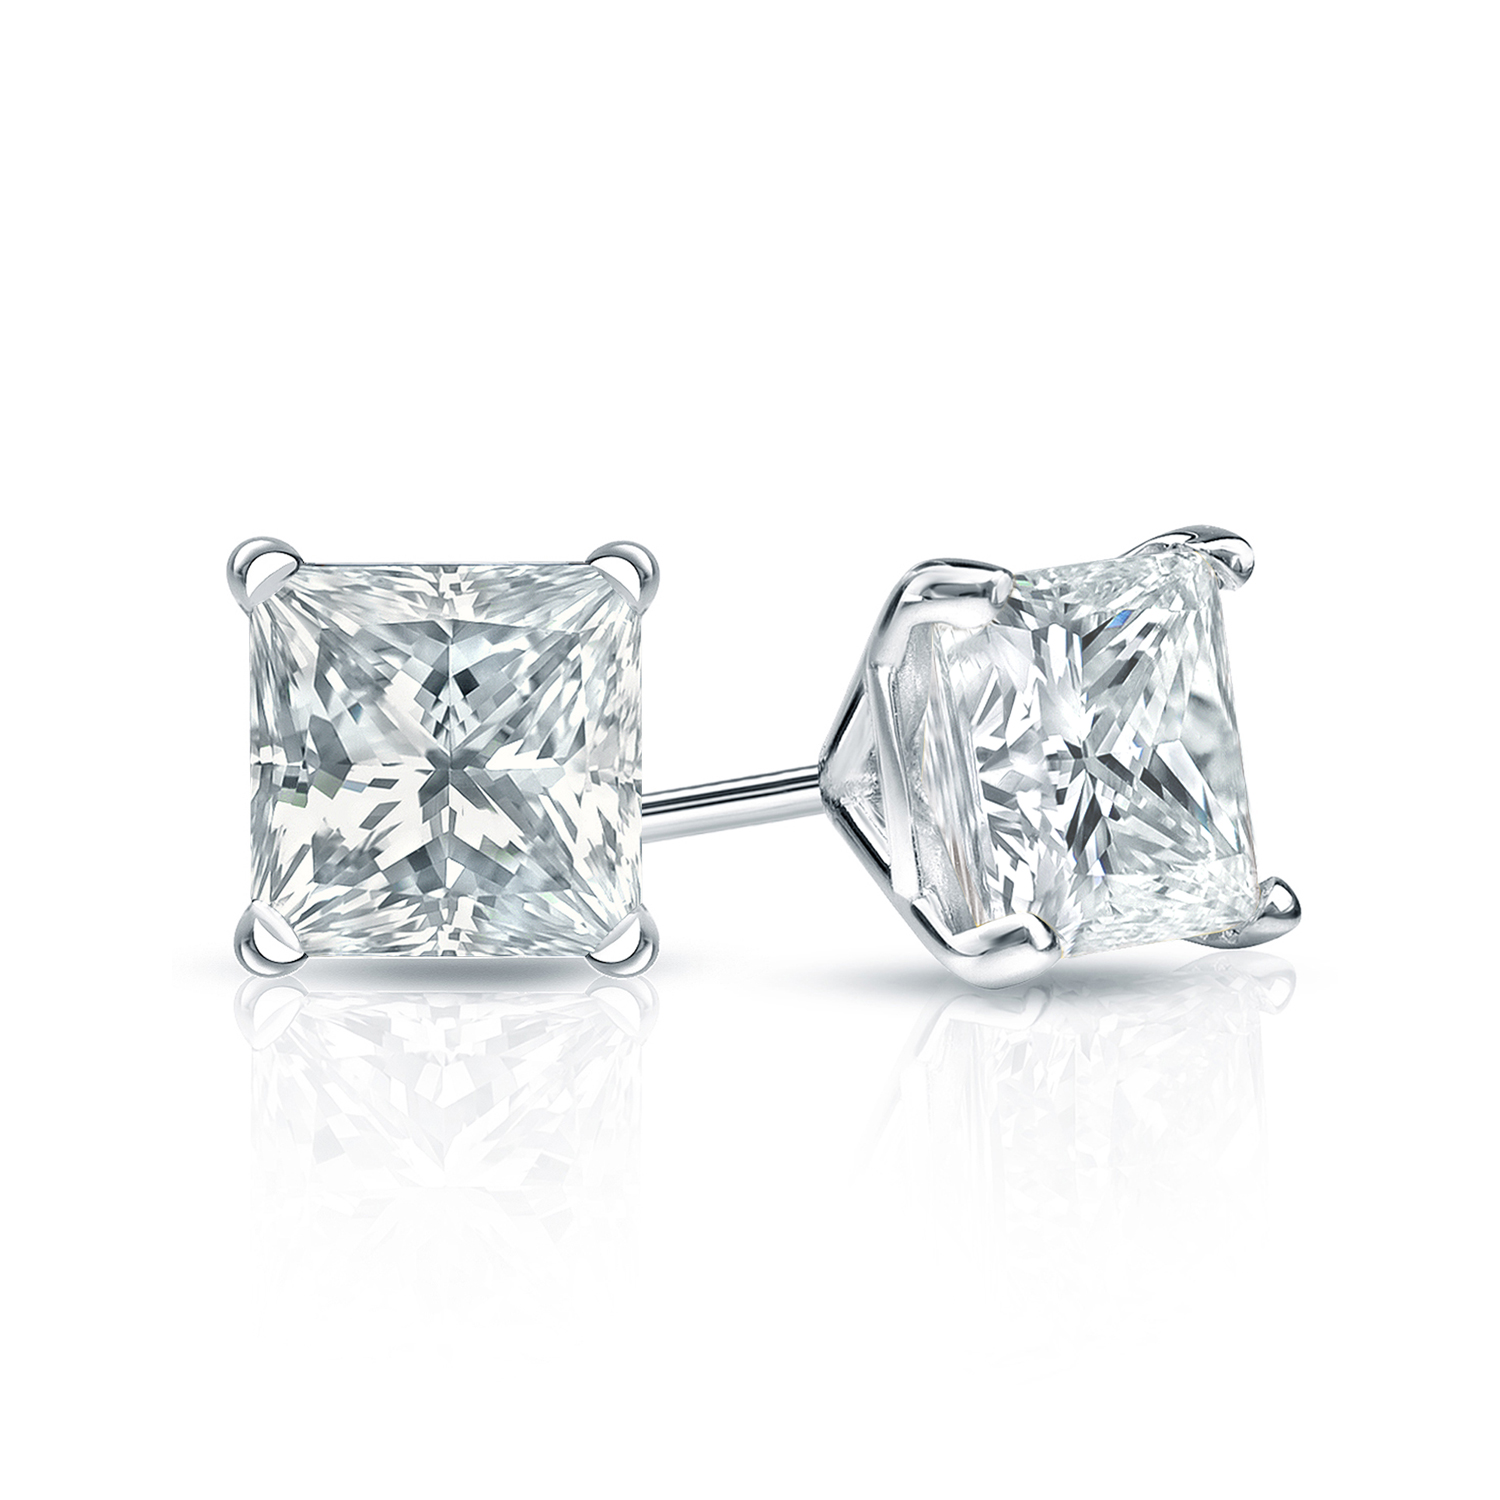 4-Prong Martini Diamond Stud Earrings in 14k White Gold